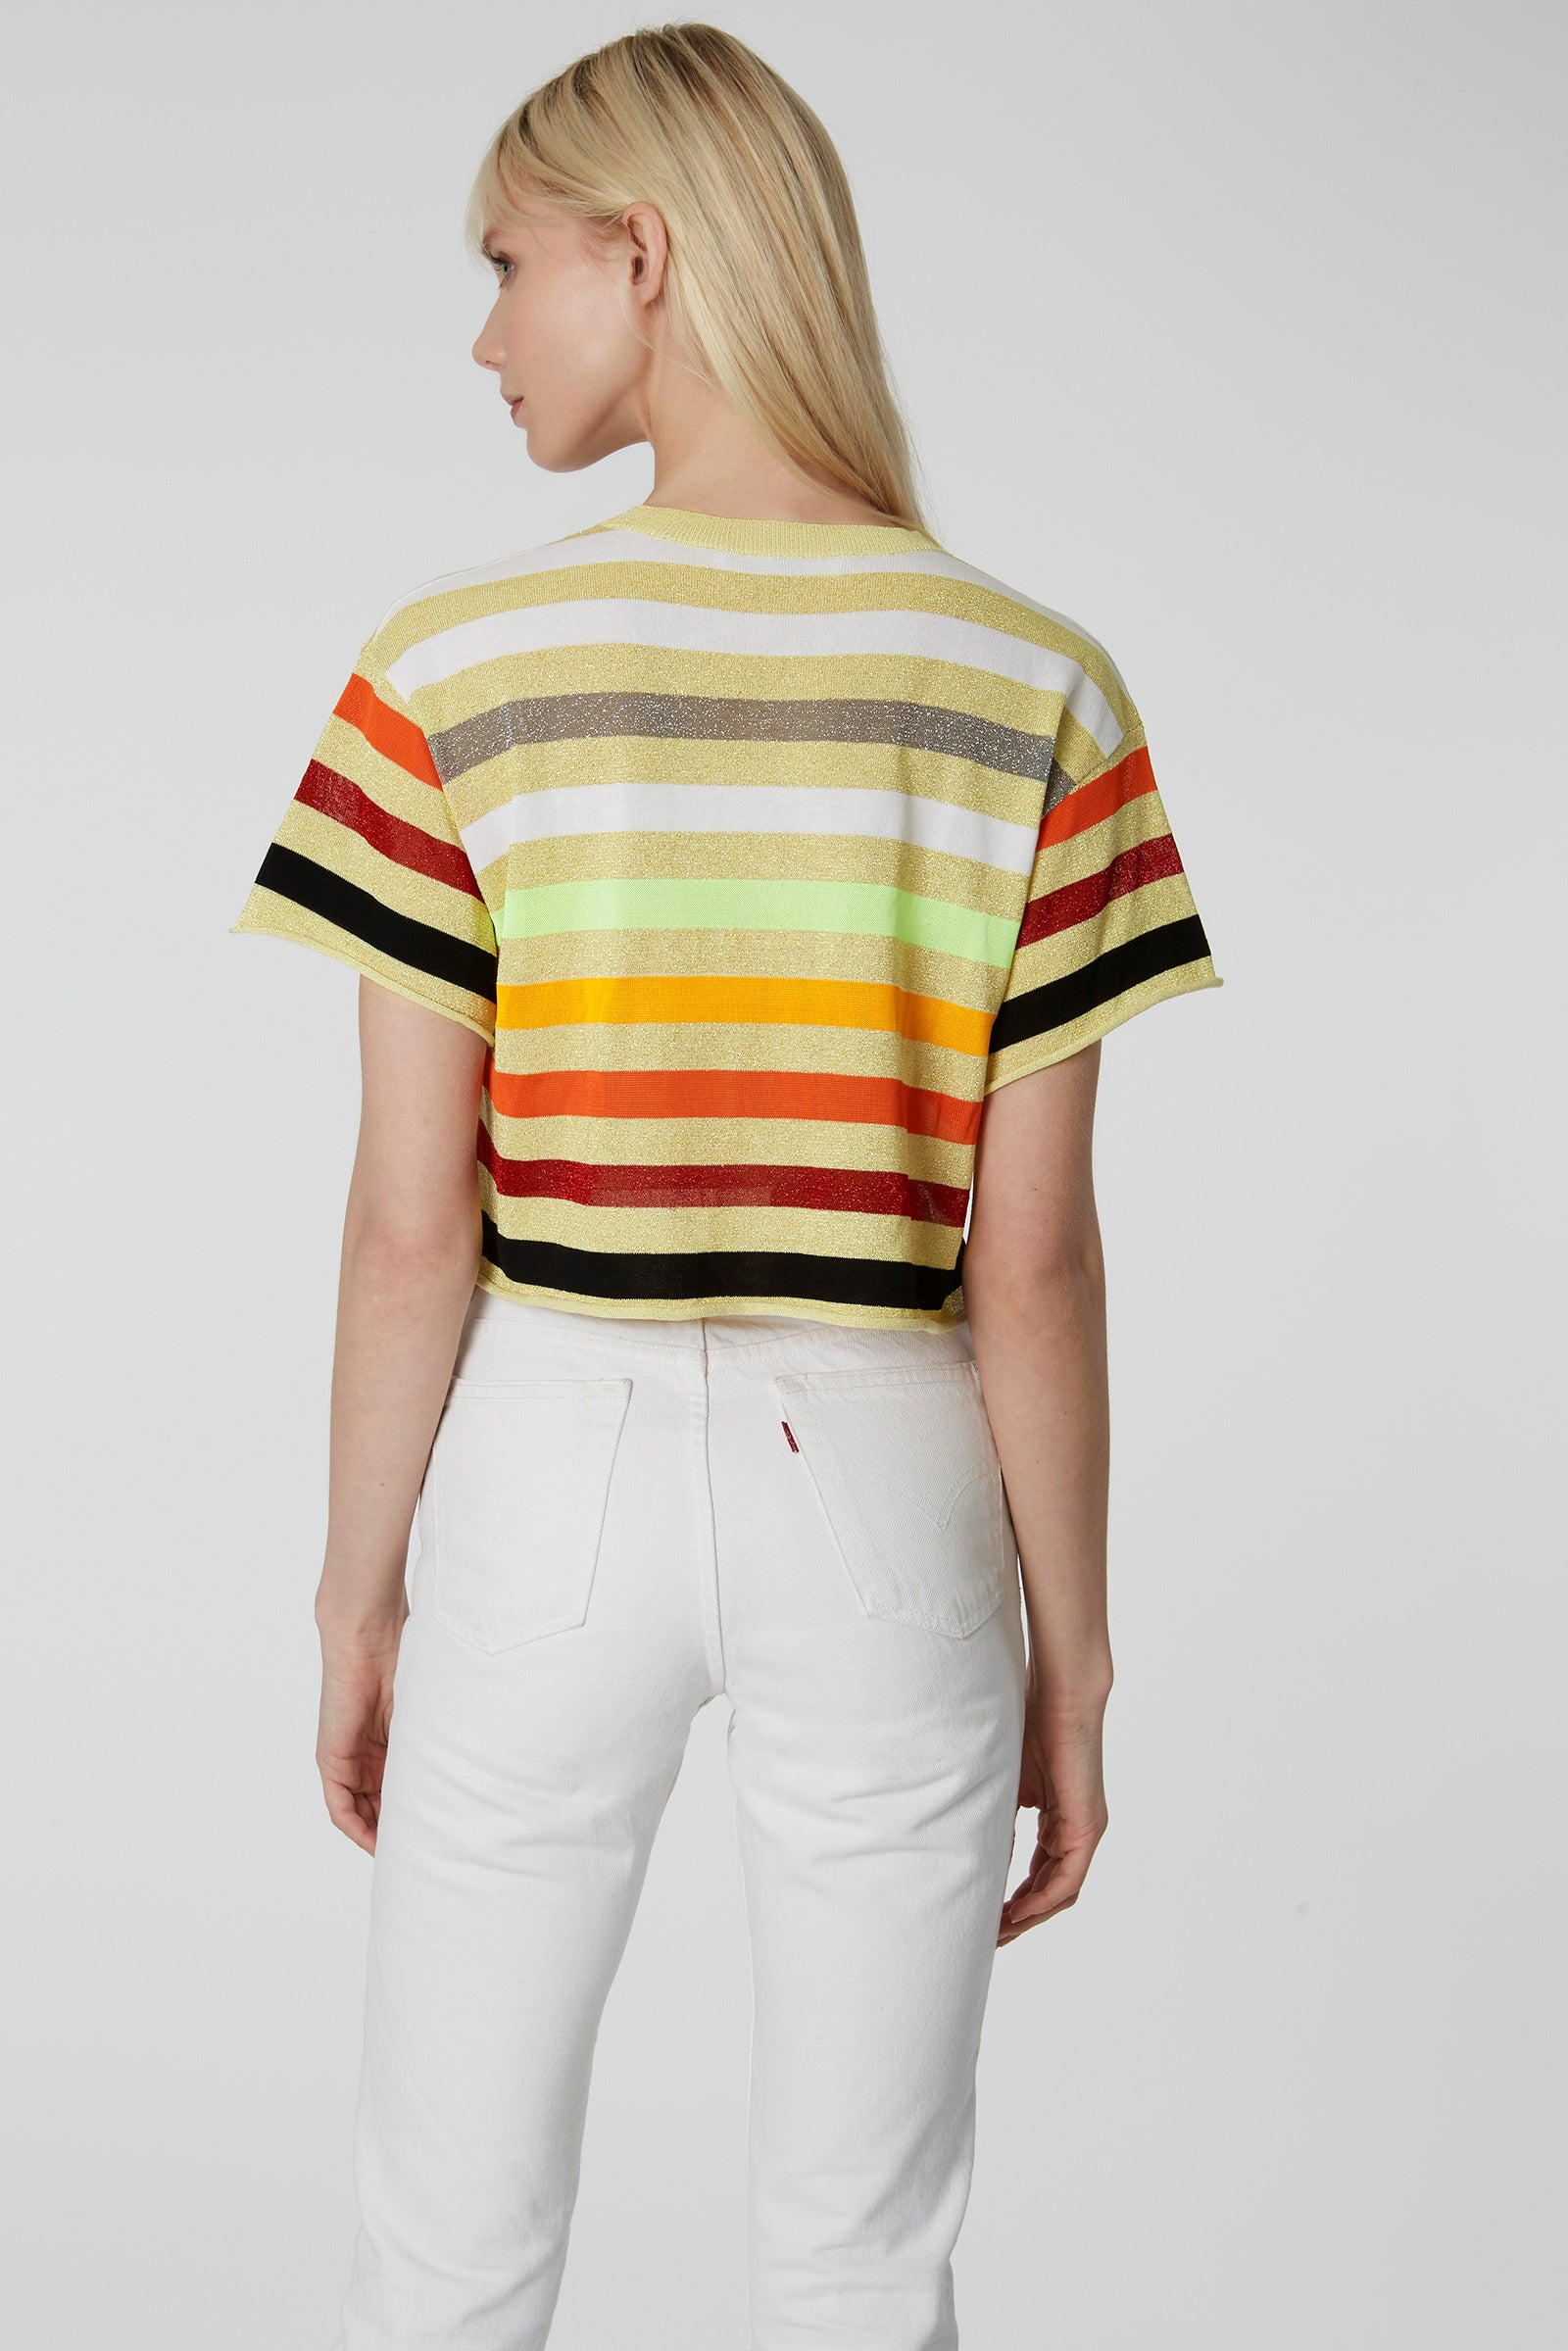 Sunset Stripe Cropped Tee